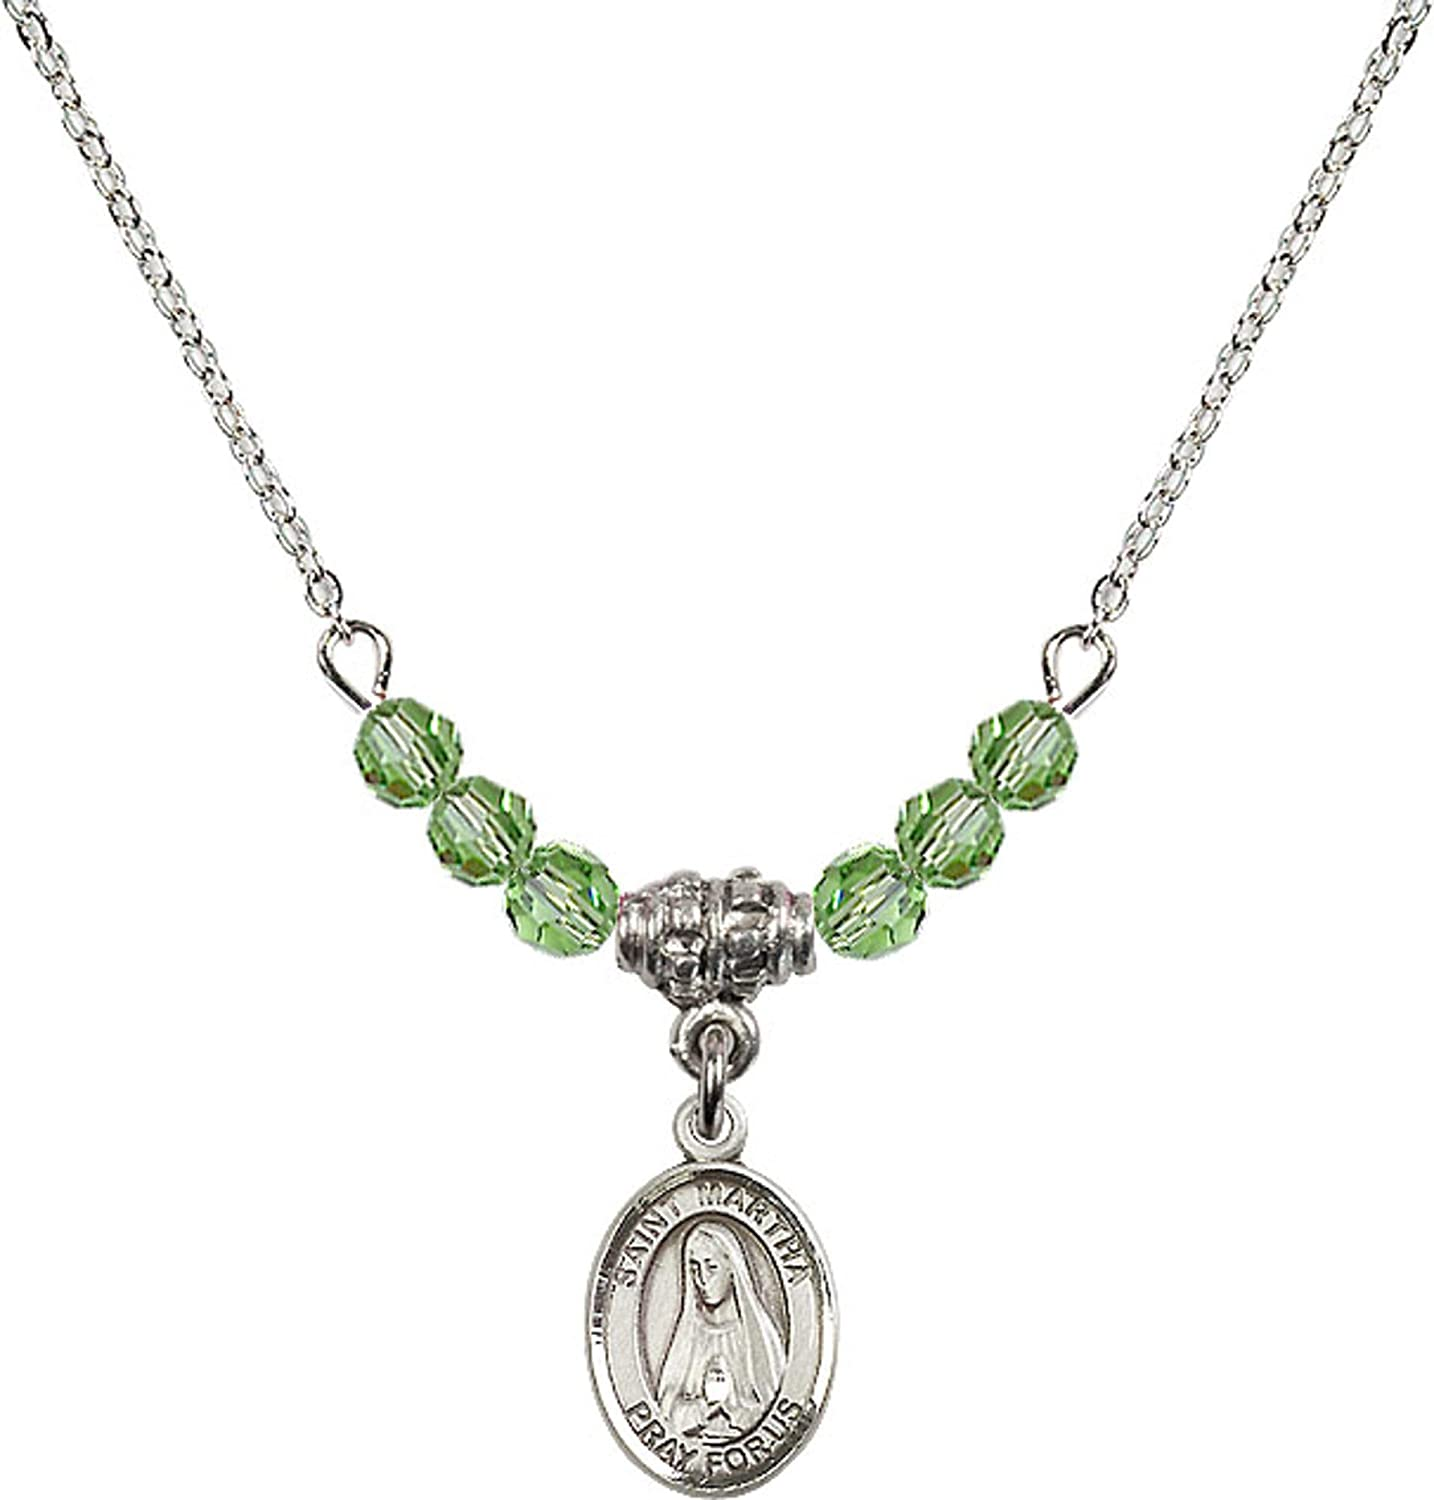 Bonyak Jewelry 18 Inch Rhodium Plated Necklace w// 4mm Green August Birth Month Stone Beads and Saint Martha Charm